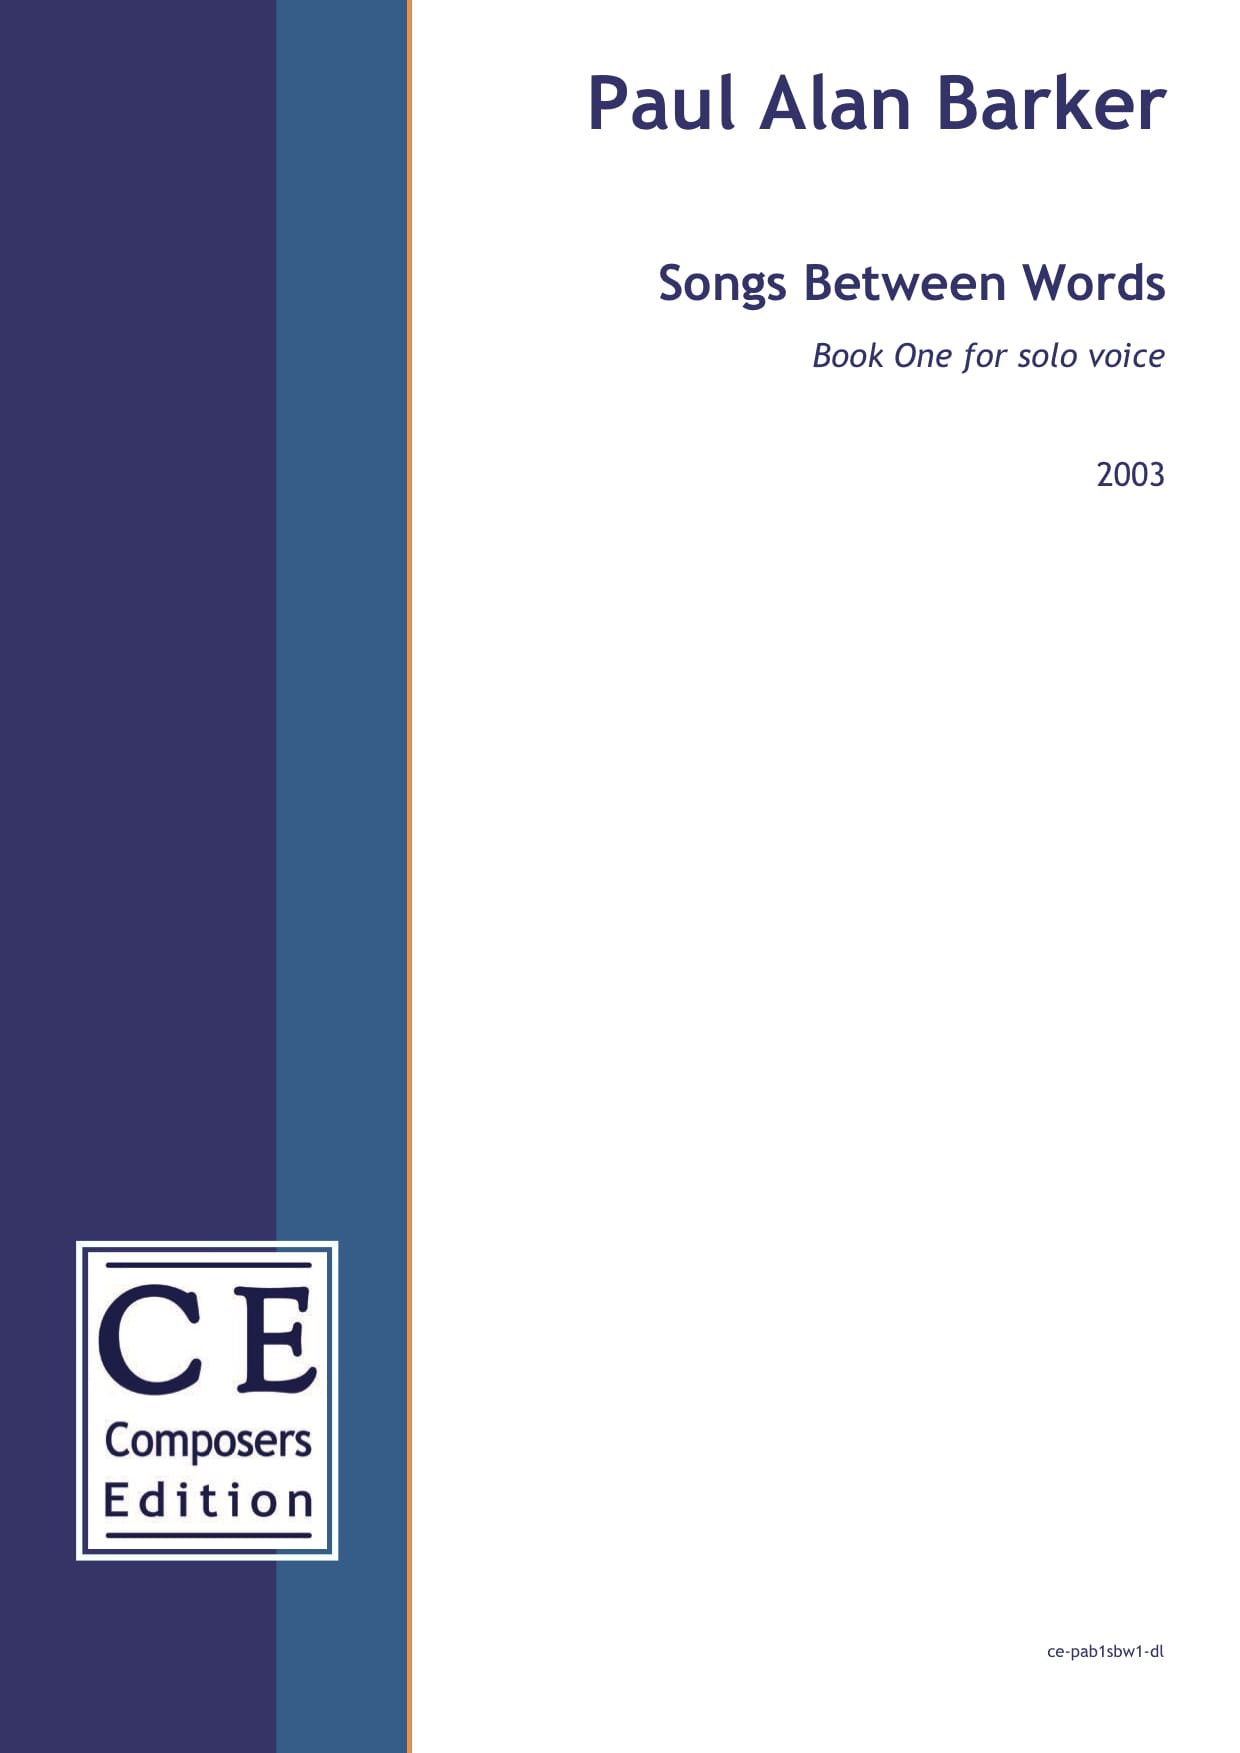 Paul Alan Barker: Songs Between Words (Book One) for solo voice